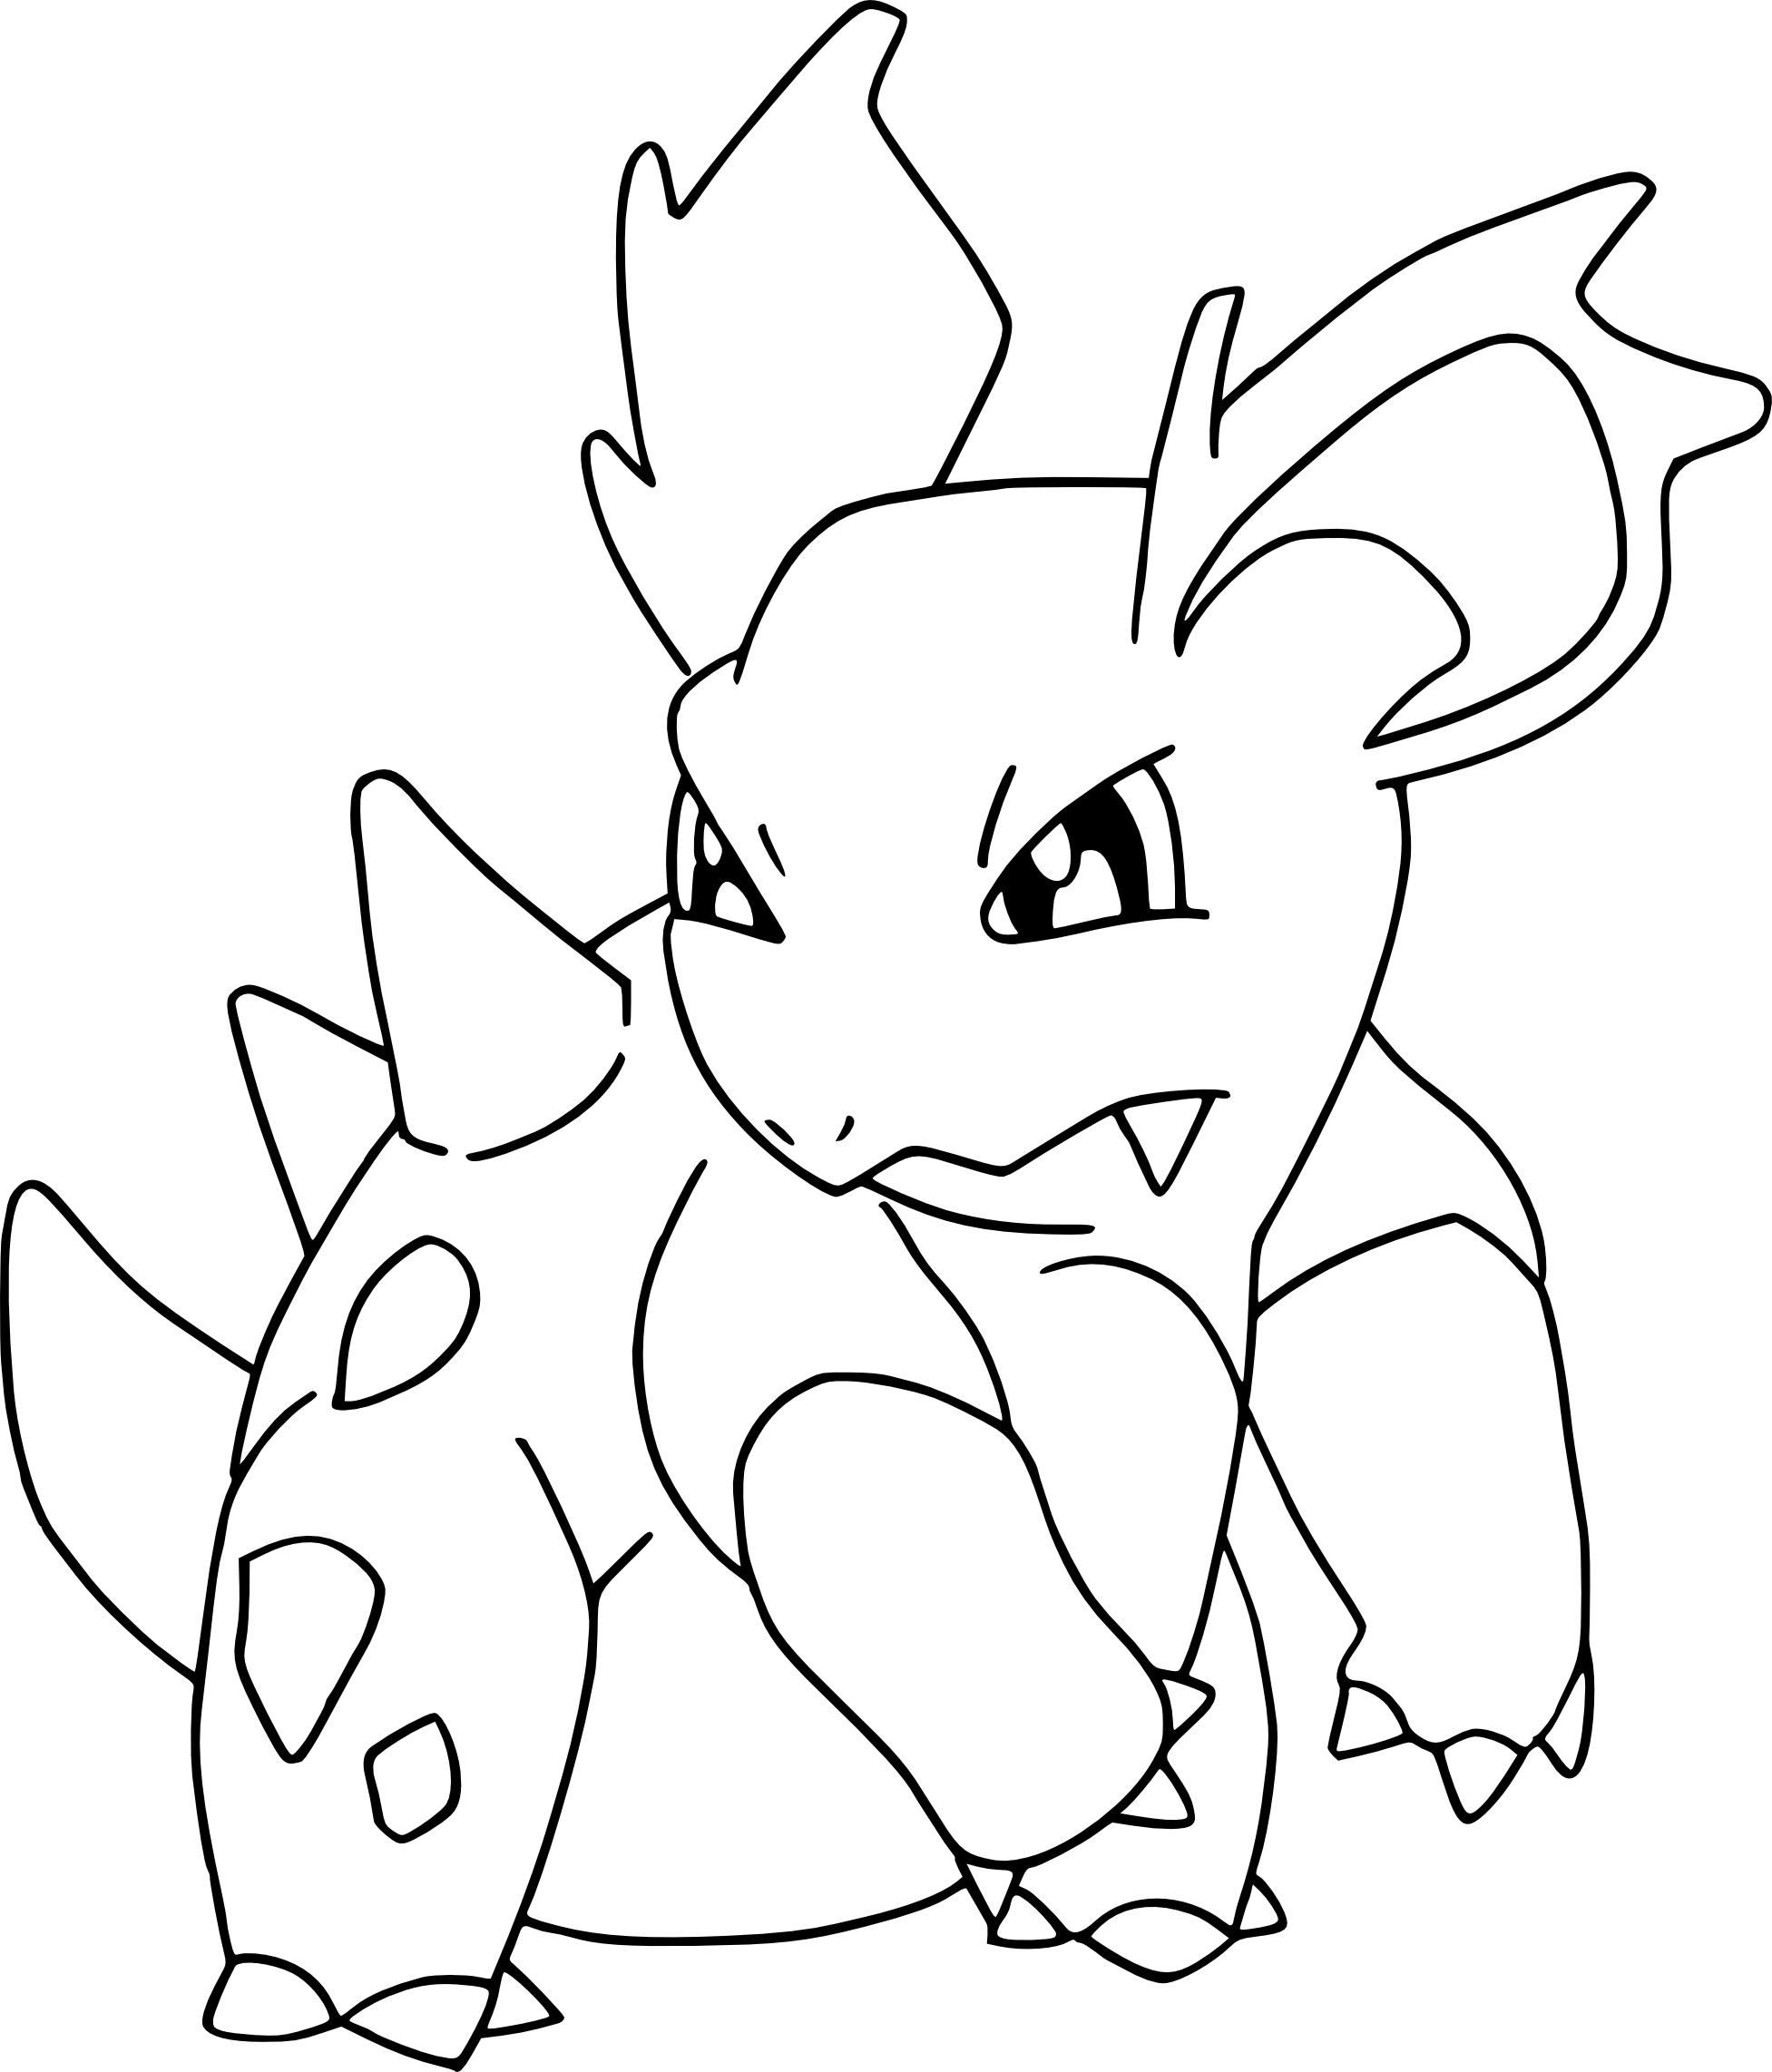 Nidorina The Pokemon Images